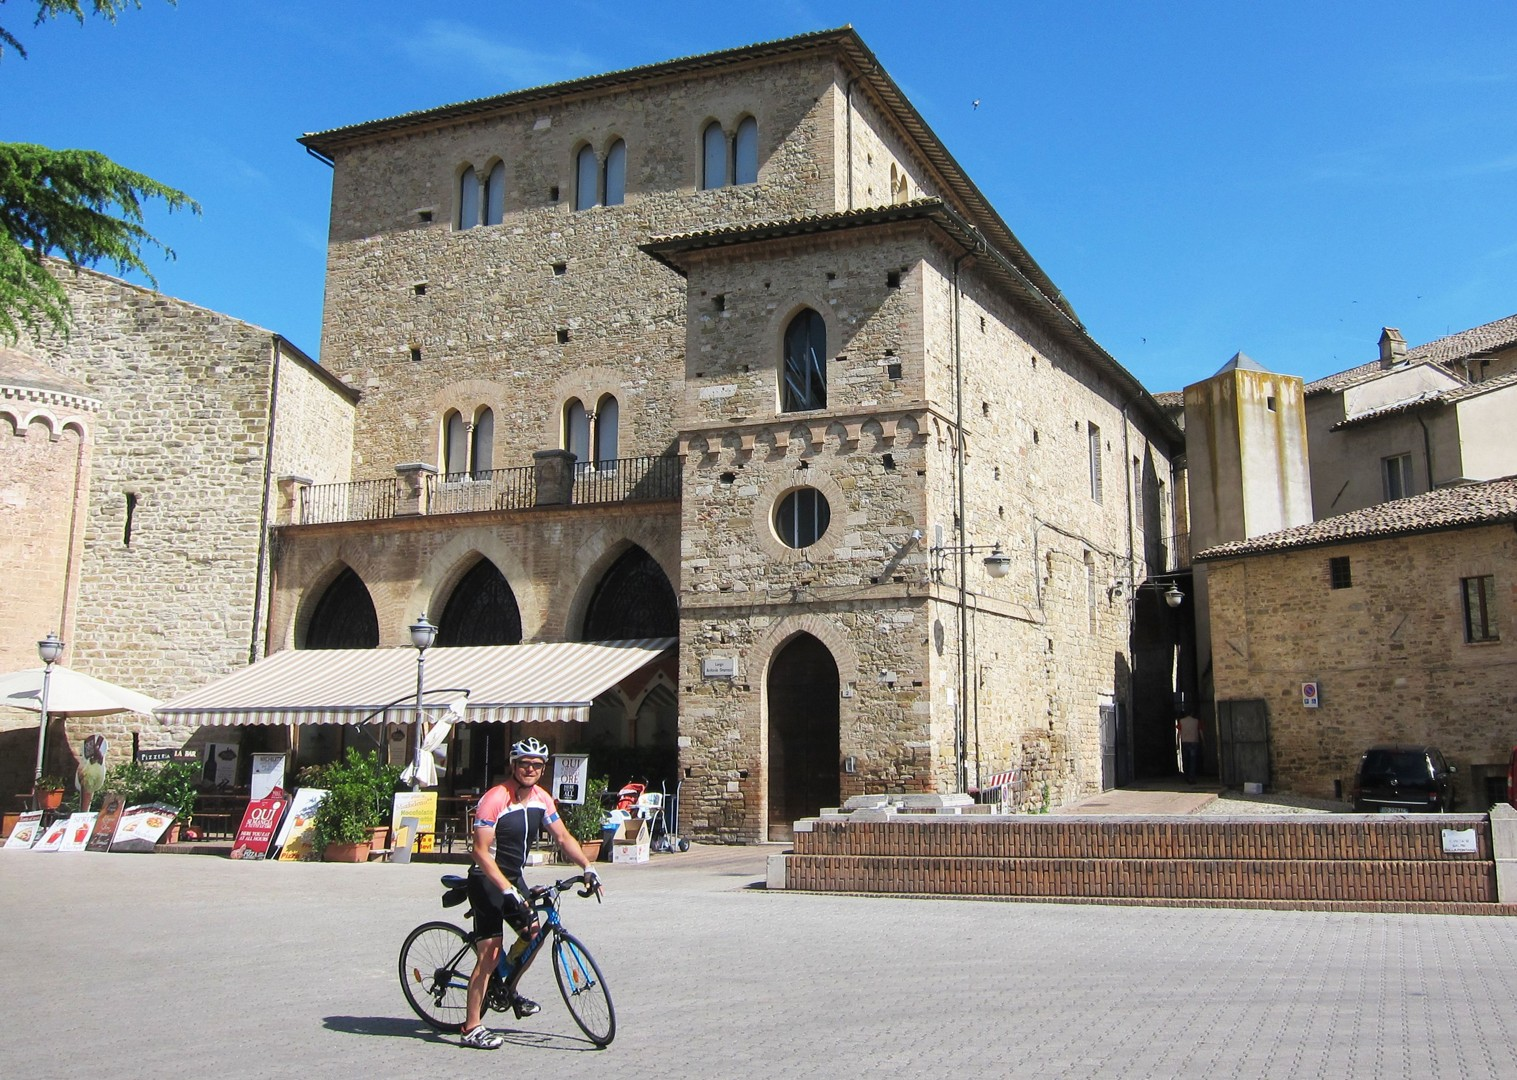 road-cycling-holiday-italy-abruzzo-skedaddle.JPG - Italy - Abruzzo - Appennini d'Abruzzo - Guided Road Cycling Holiday - Road Cycling